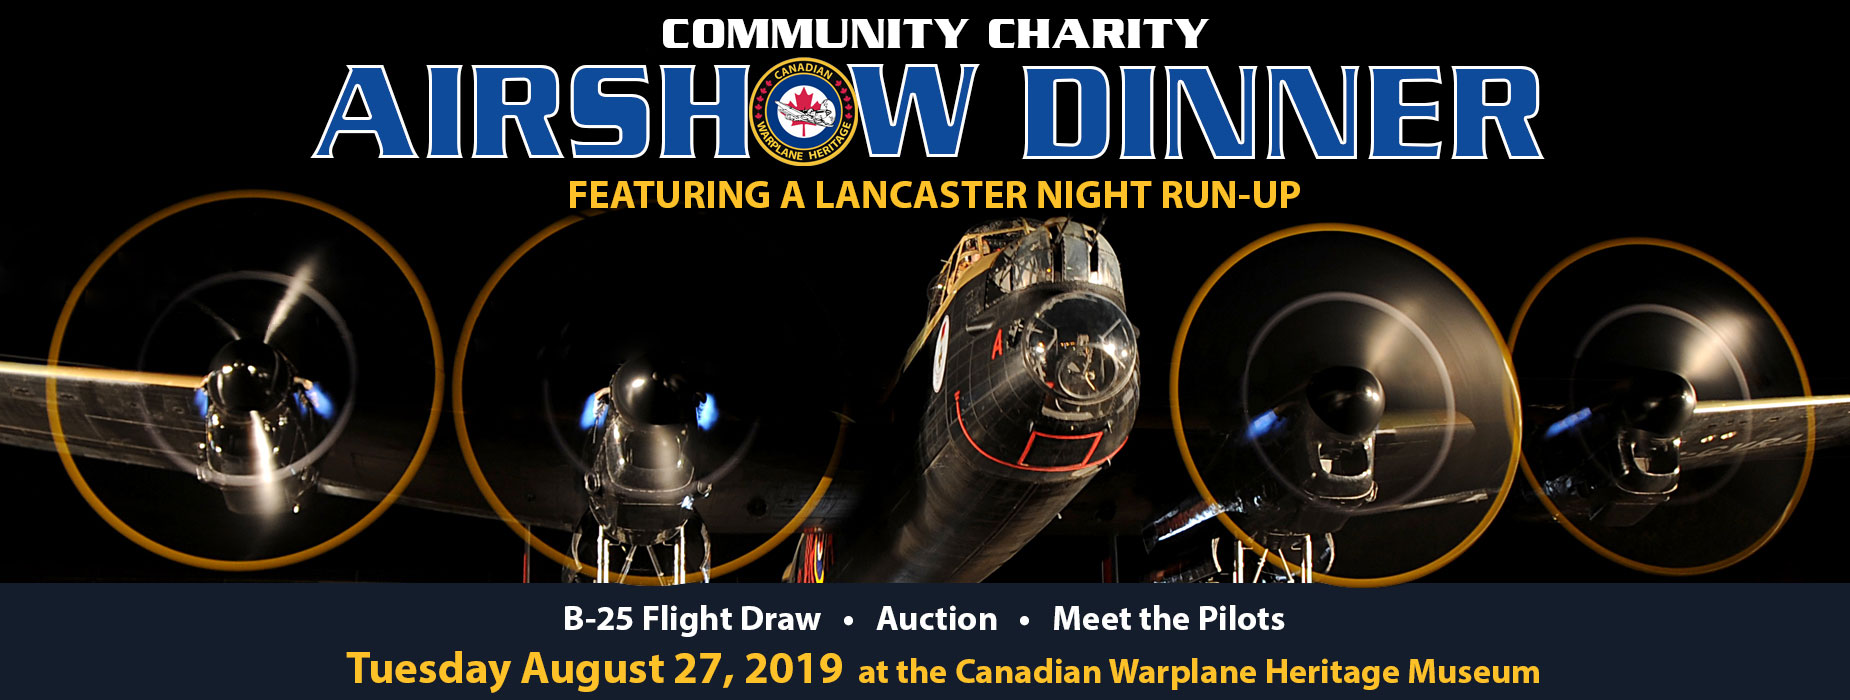 Poster for Community Charity Airshow Dinner